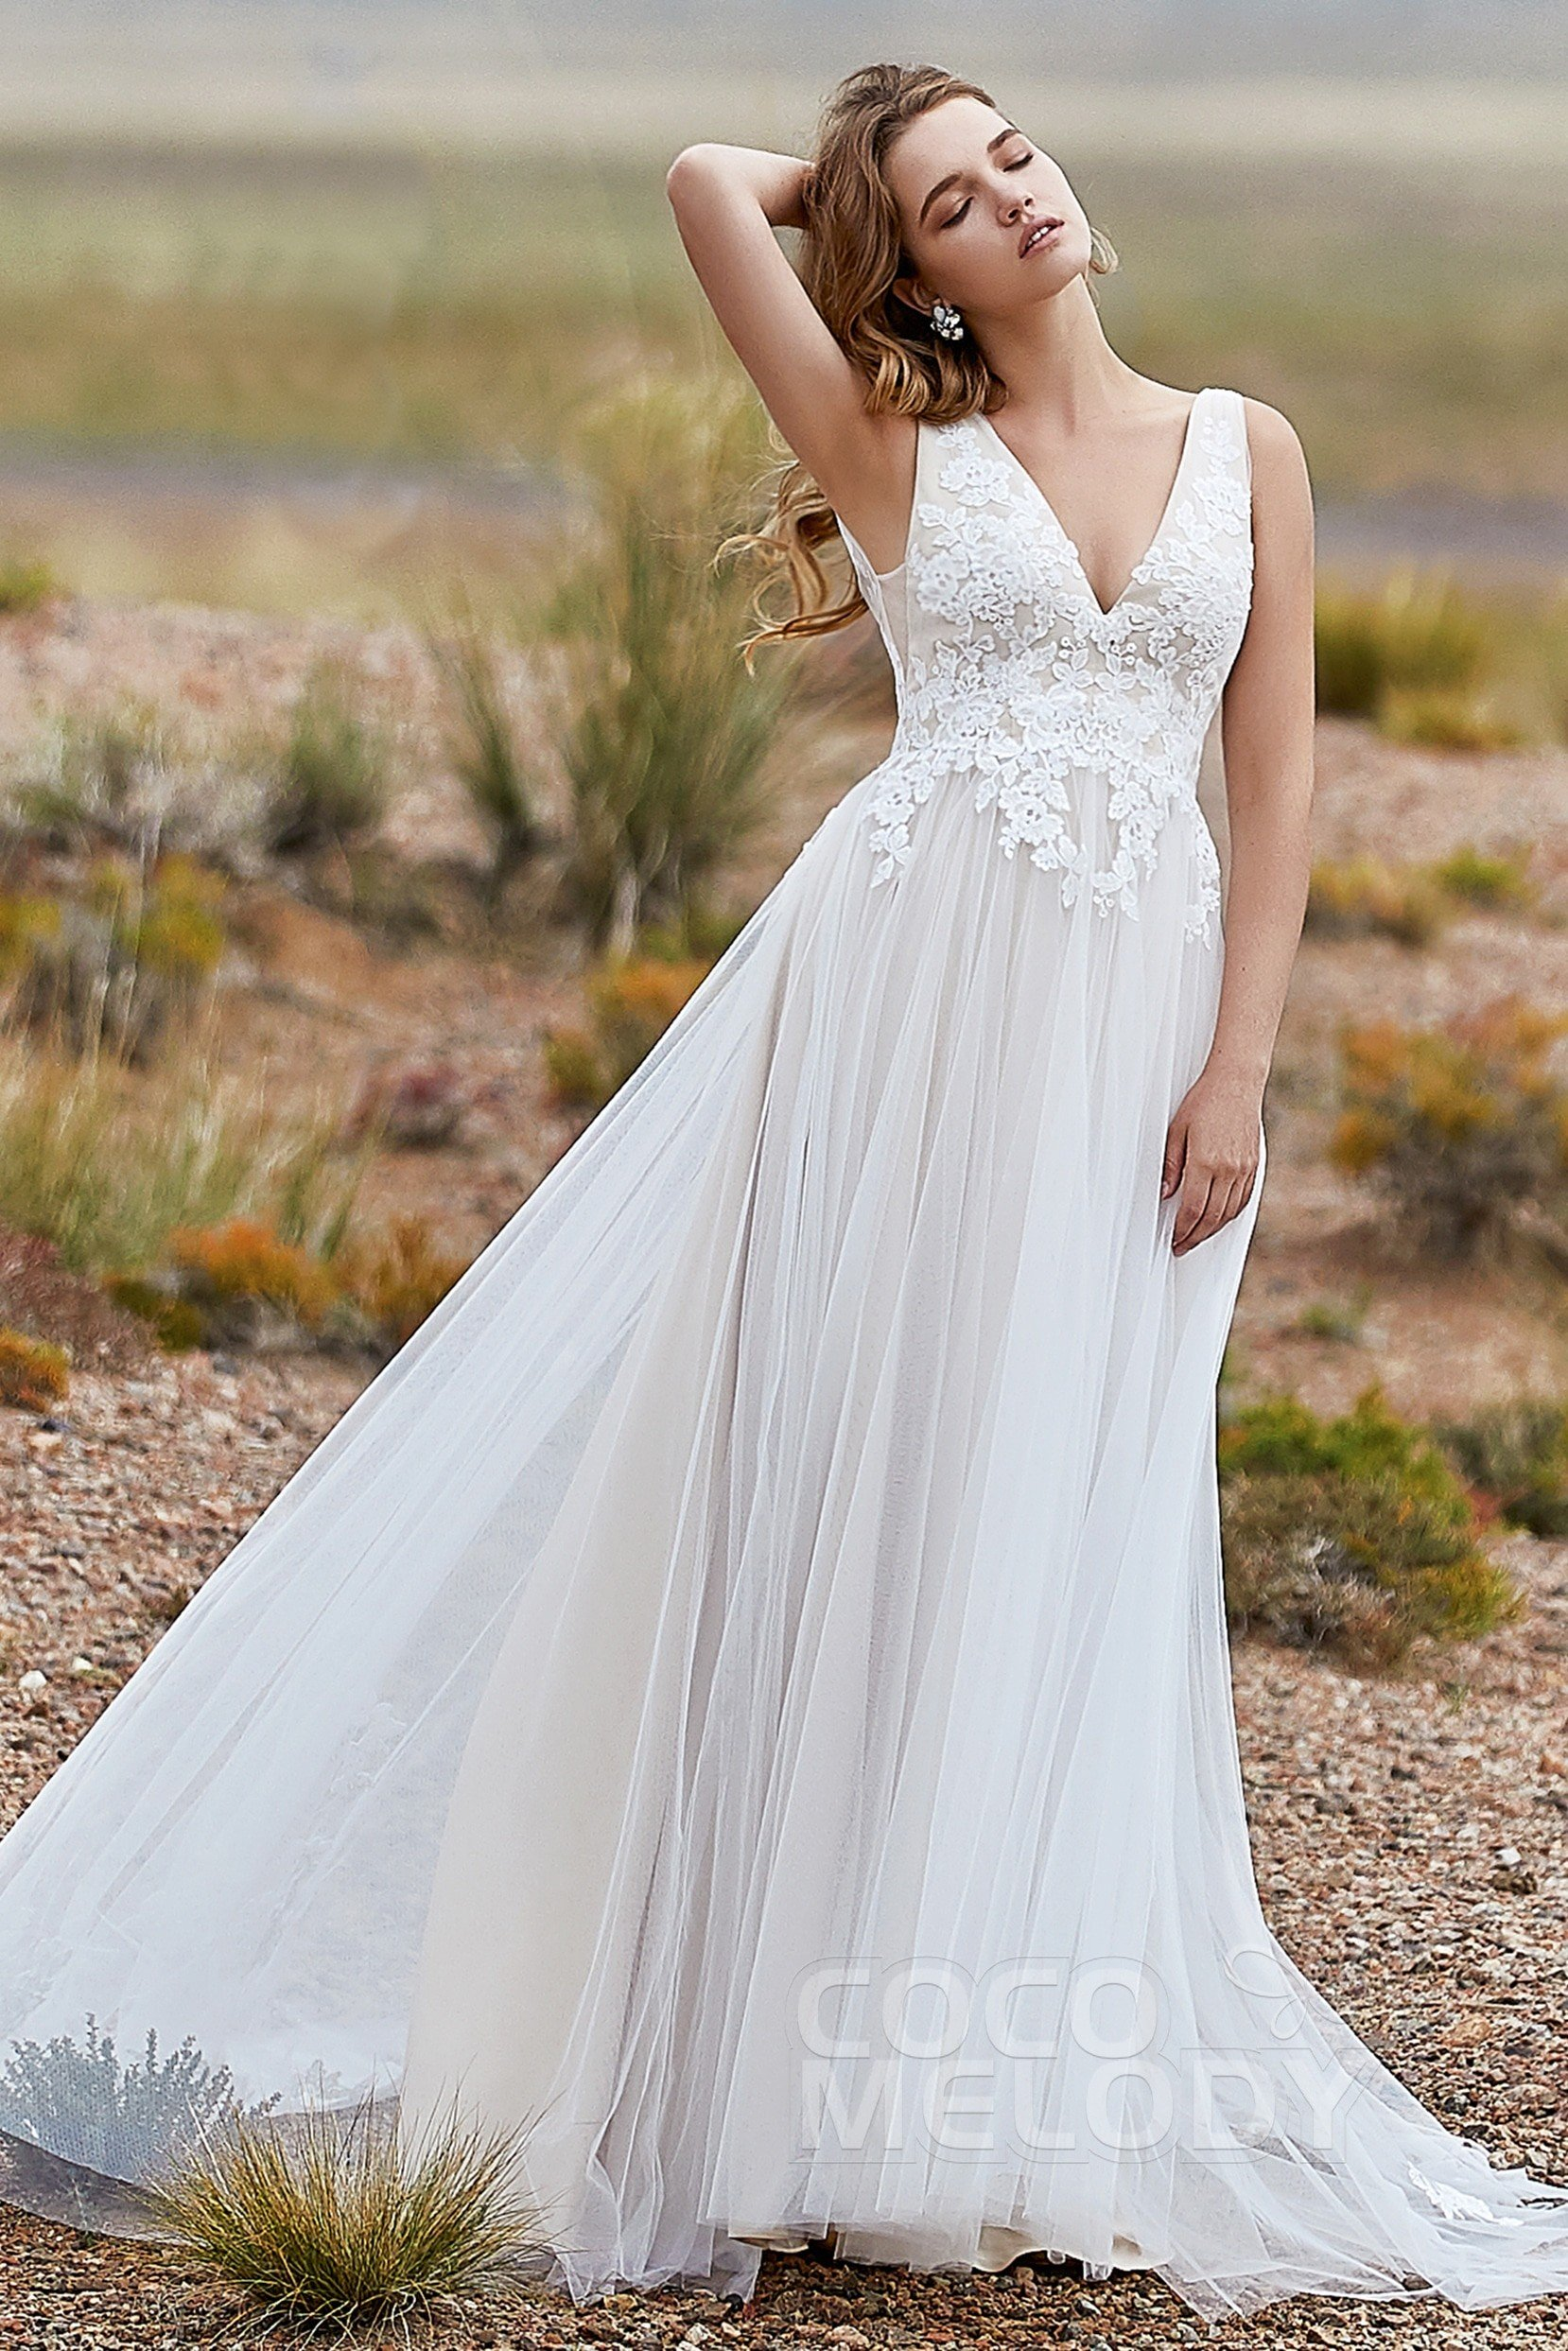 d9099b0447c14 Chic Sweep-Brush Train Wedding Dress with Appliques LD5833 | Cocomelody